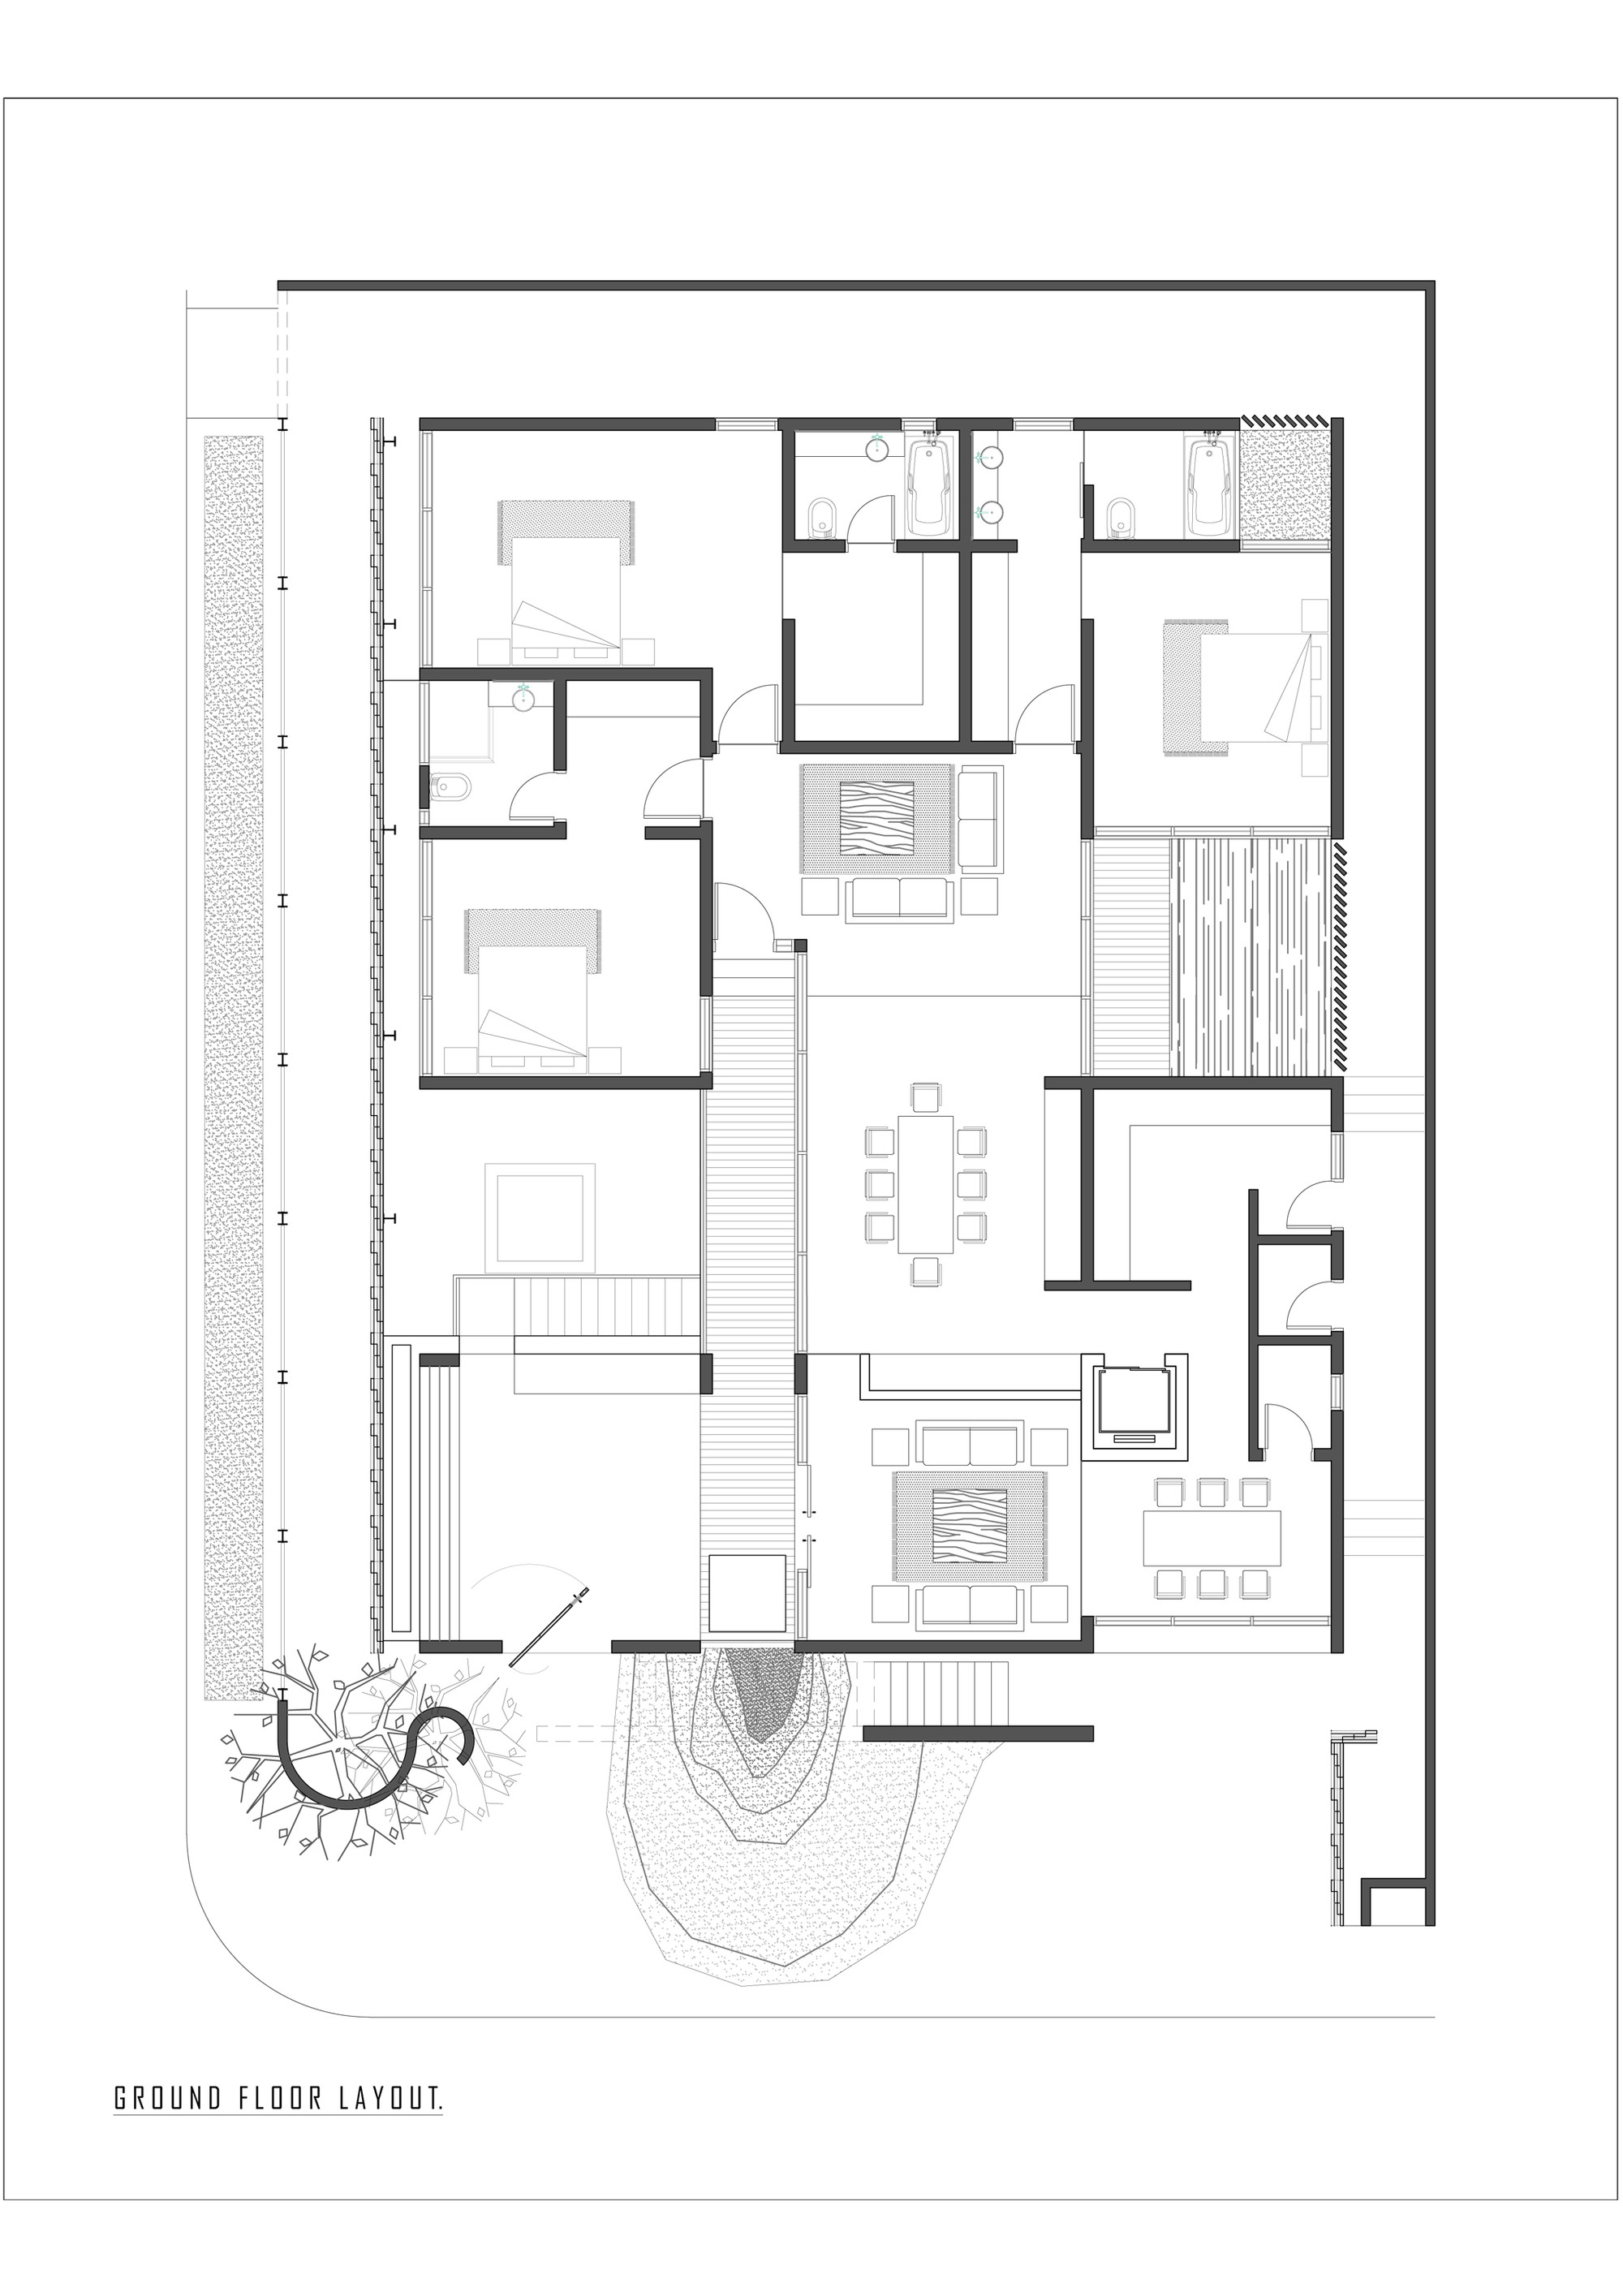 Galer a de residencia kapadia coalesce design studio 20 Ground floor house plan